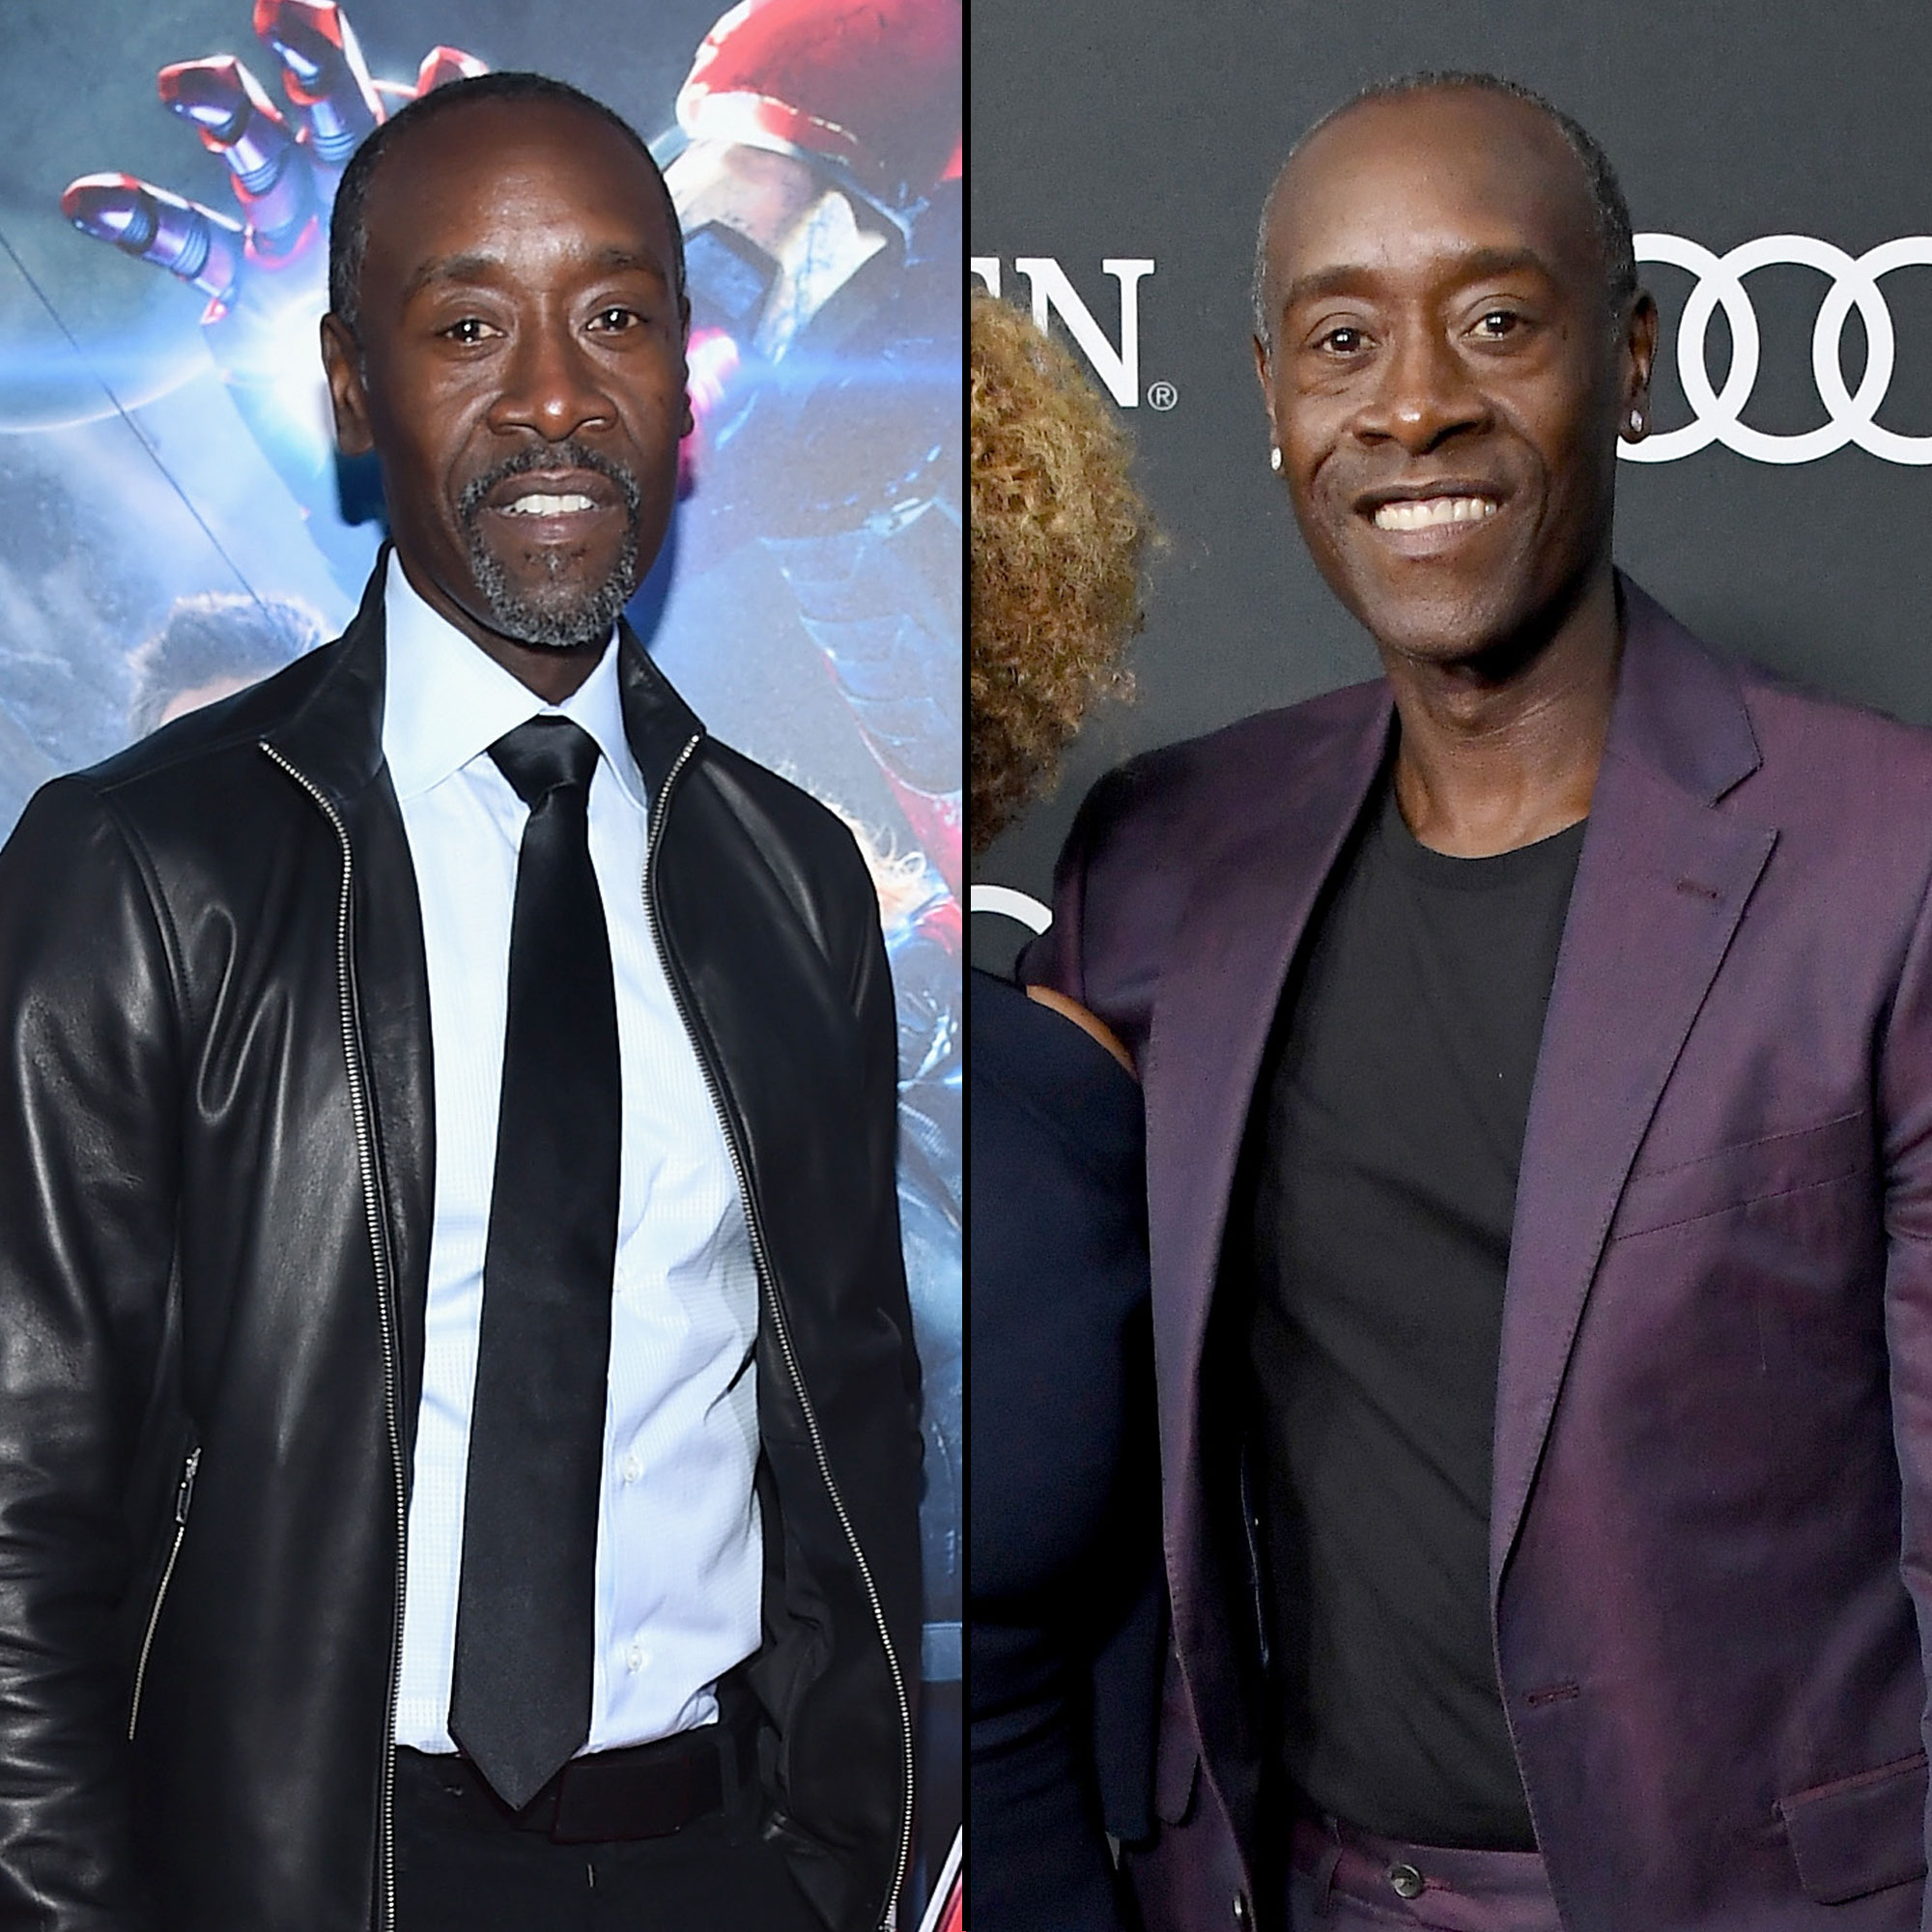 Don Cheadle Avengers Premiere First Super Red Carpet to Their Last - Though the longtime actor appeared in Iron Man films as far back as 2010, he didn't make his Avengers debut until 2015's Age of Ultron . Cheadle looked every bit as spiffy in his purple suit at the Endgame showing as he did in his slick leather jacket years prior.